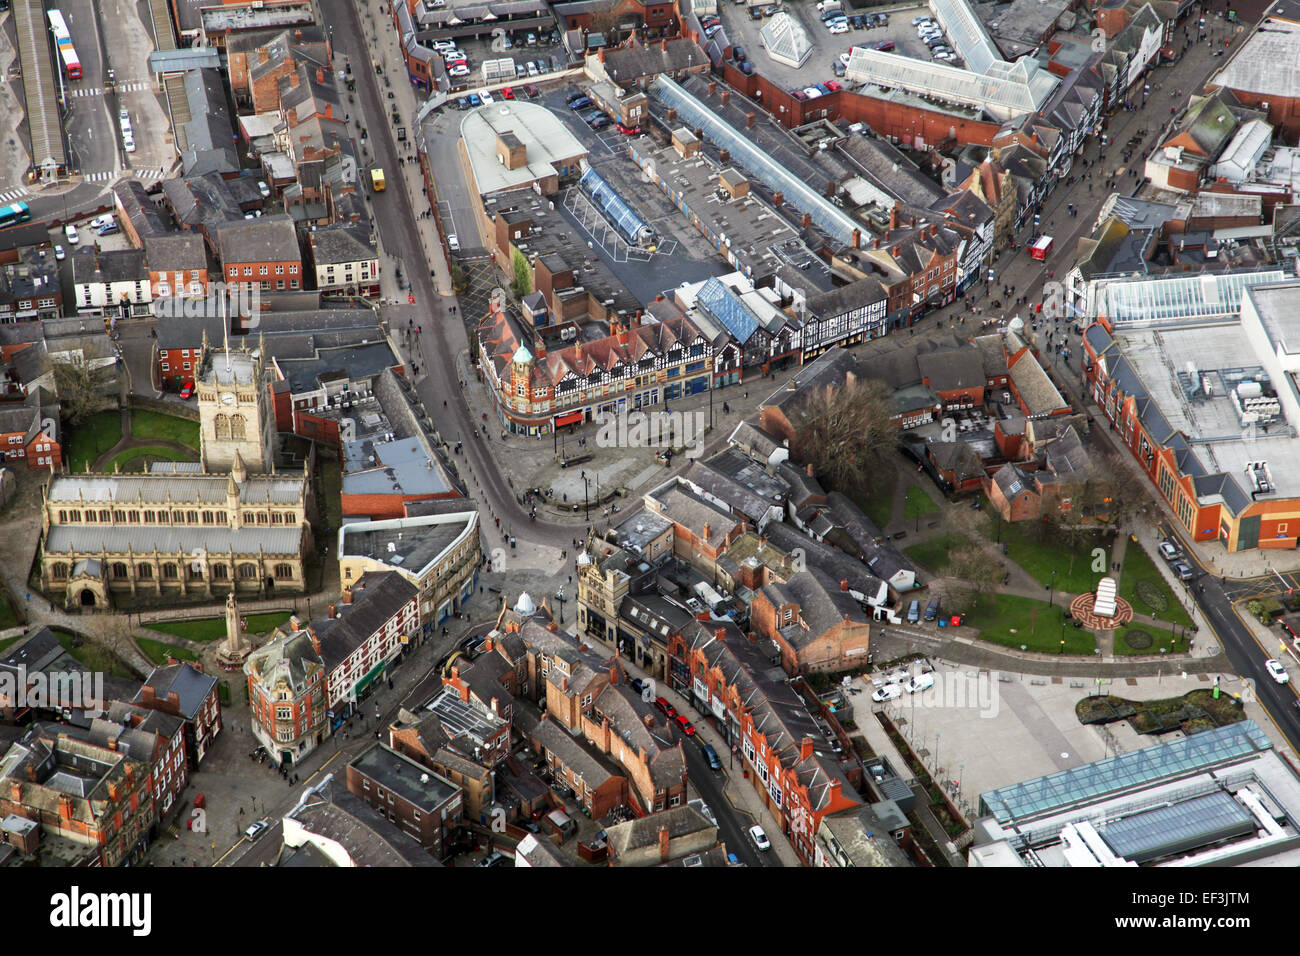 aerial view of Wigan town centre including Parish Church and Wallgate, Lancashire, UK - Stock Image